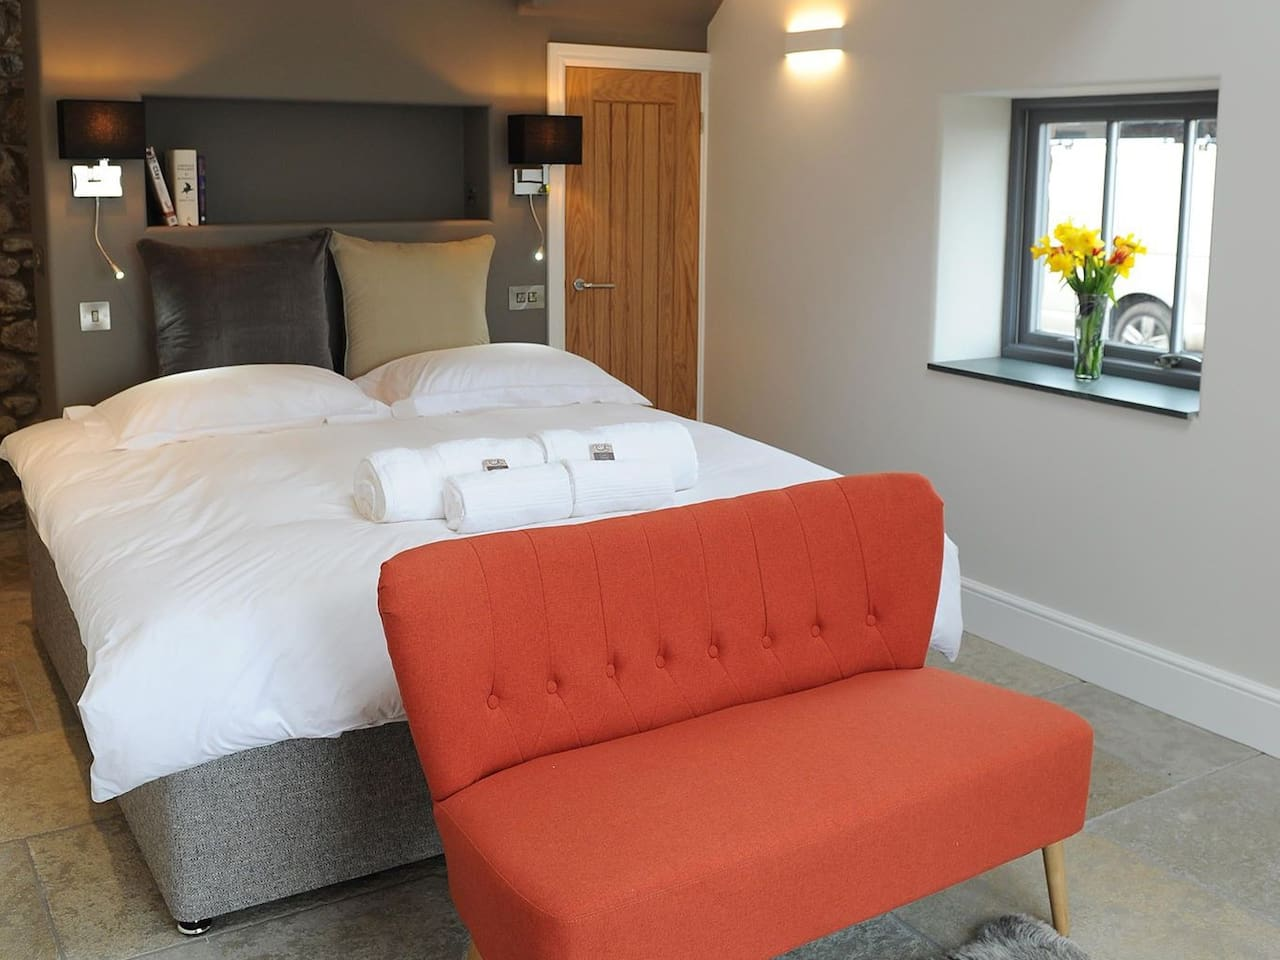 Stone Suite has a Superking size bed and mezzanine bathroom with copper coloured bath